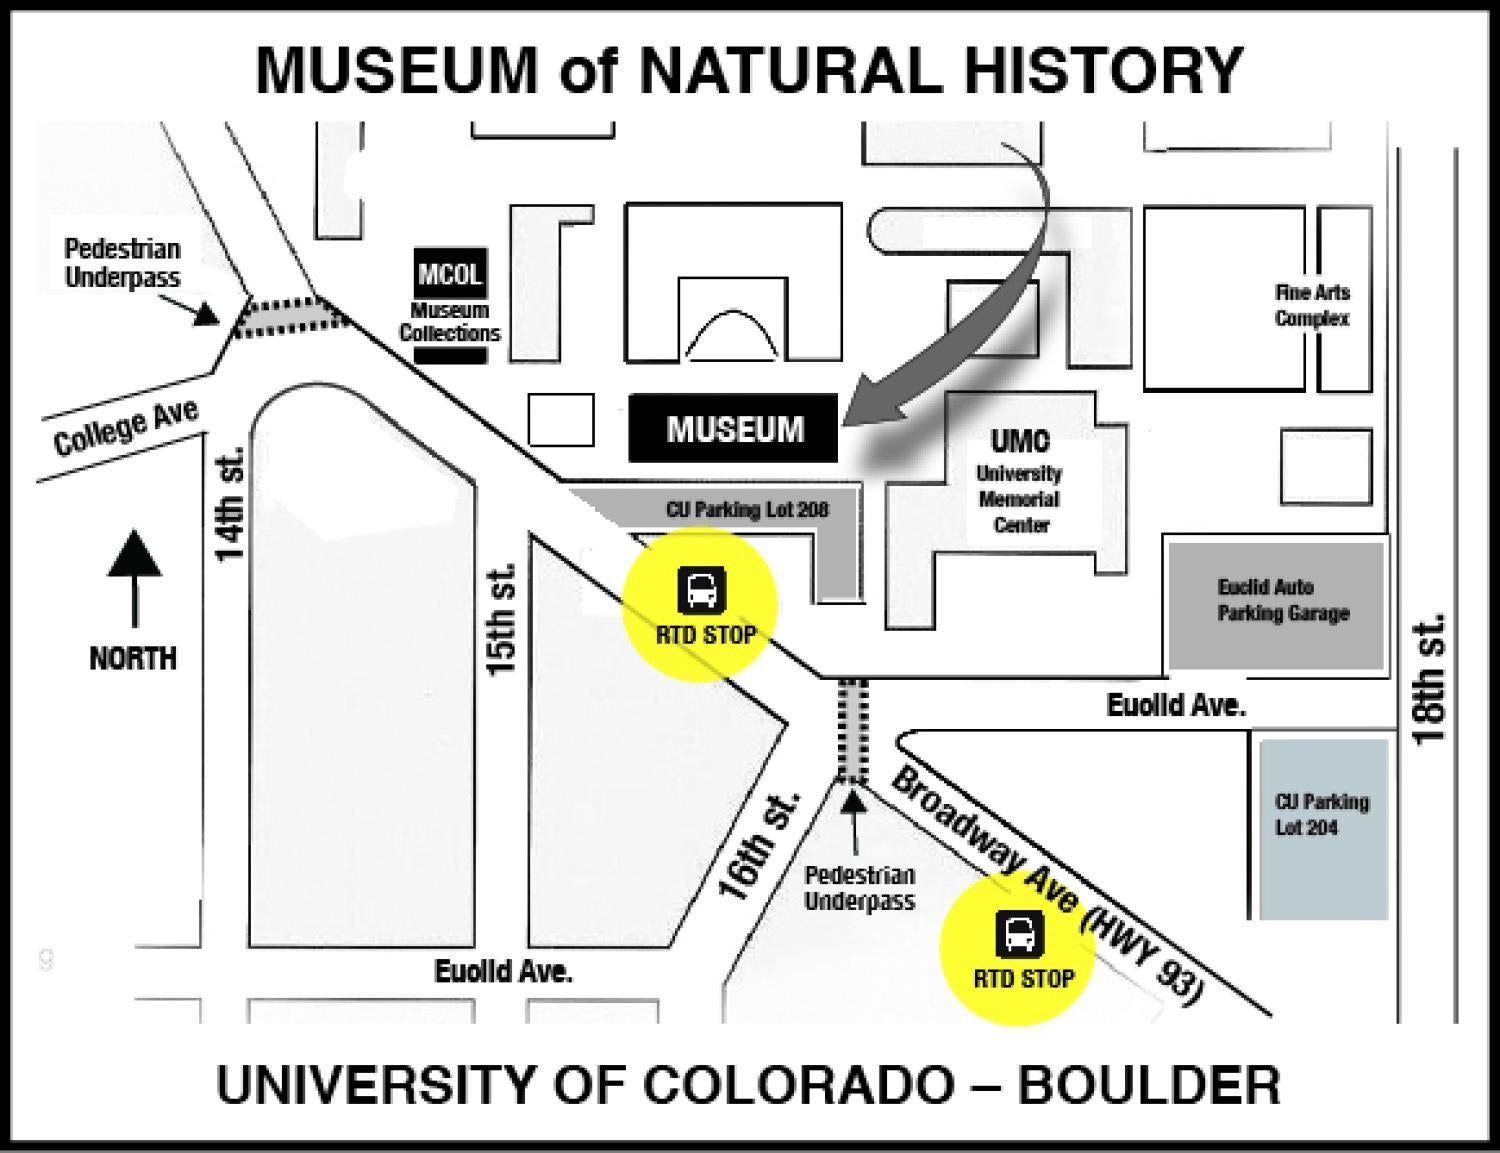 Map of campus with the Natural History Museum and highlighted RTD bus stops